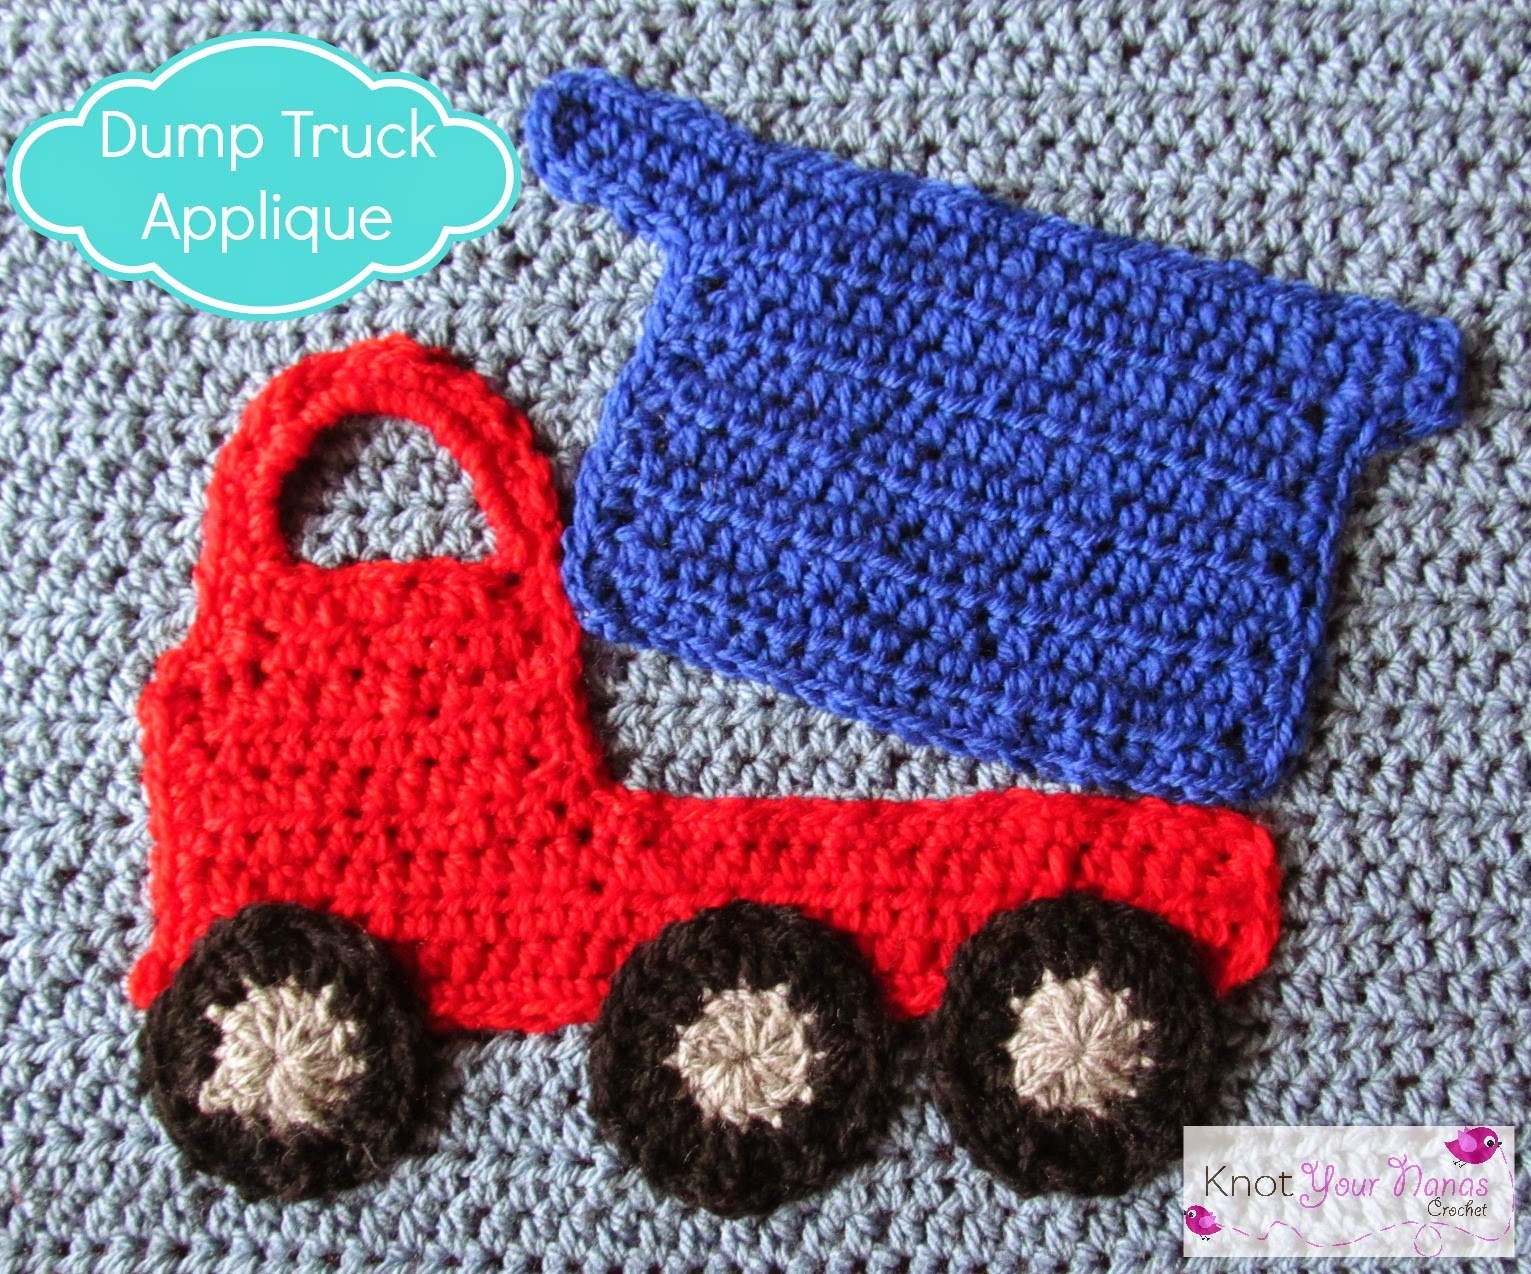 Crochet-Dump-Truck-Applique